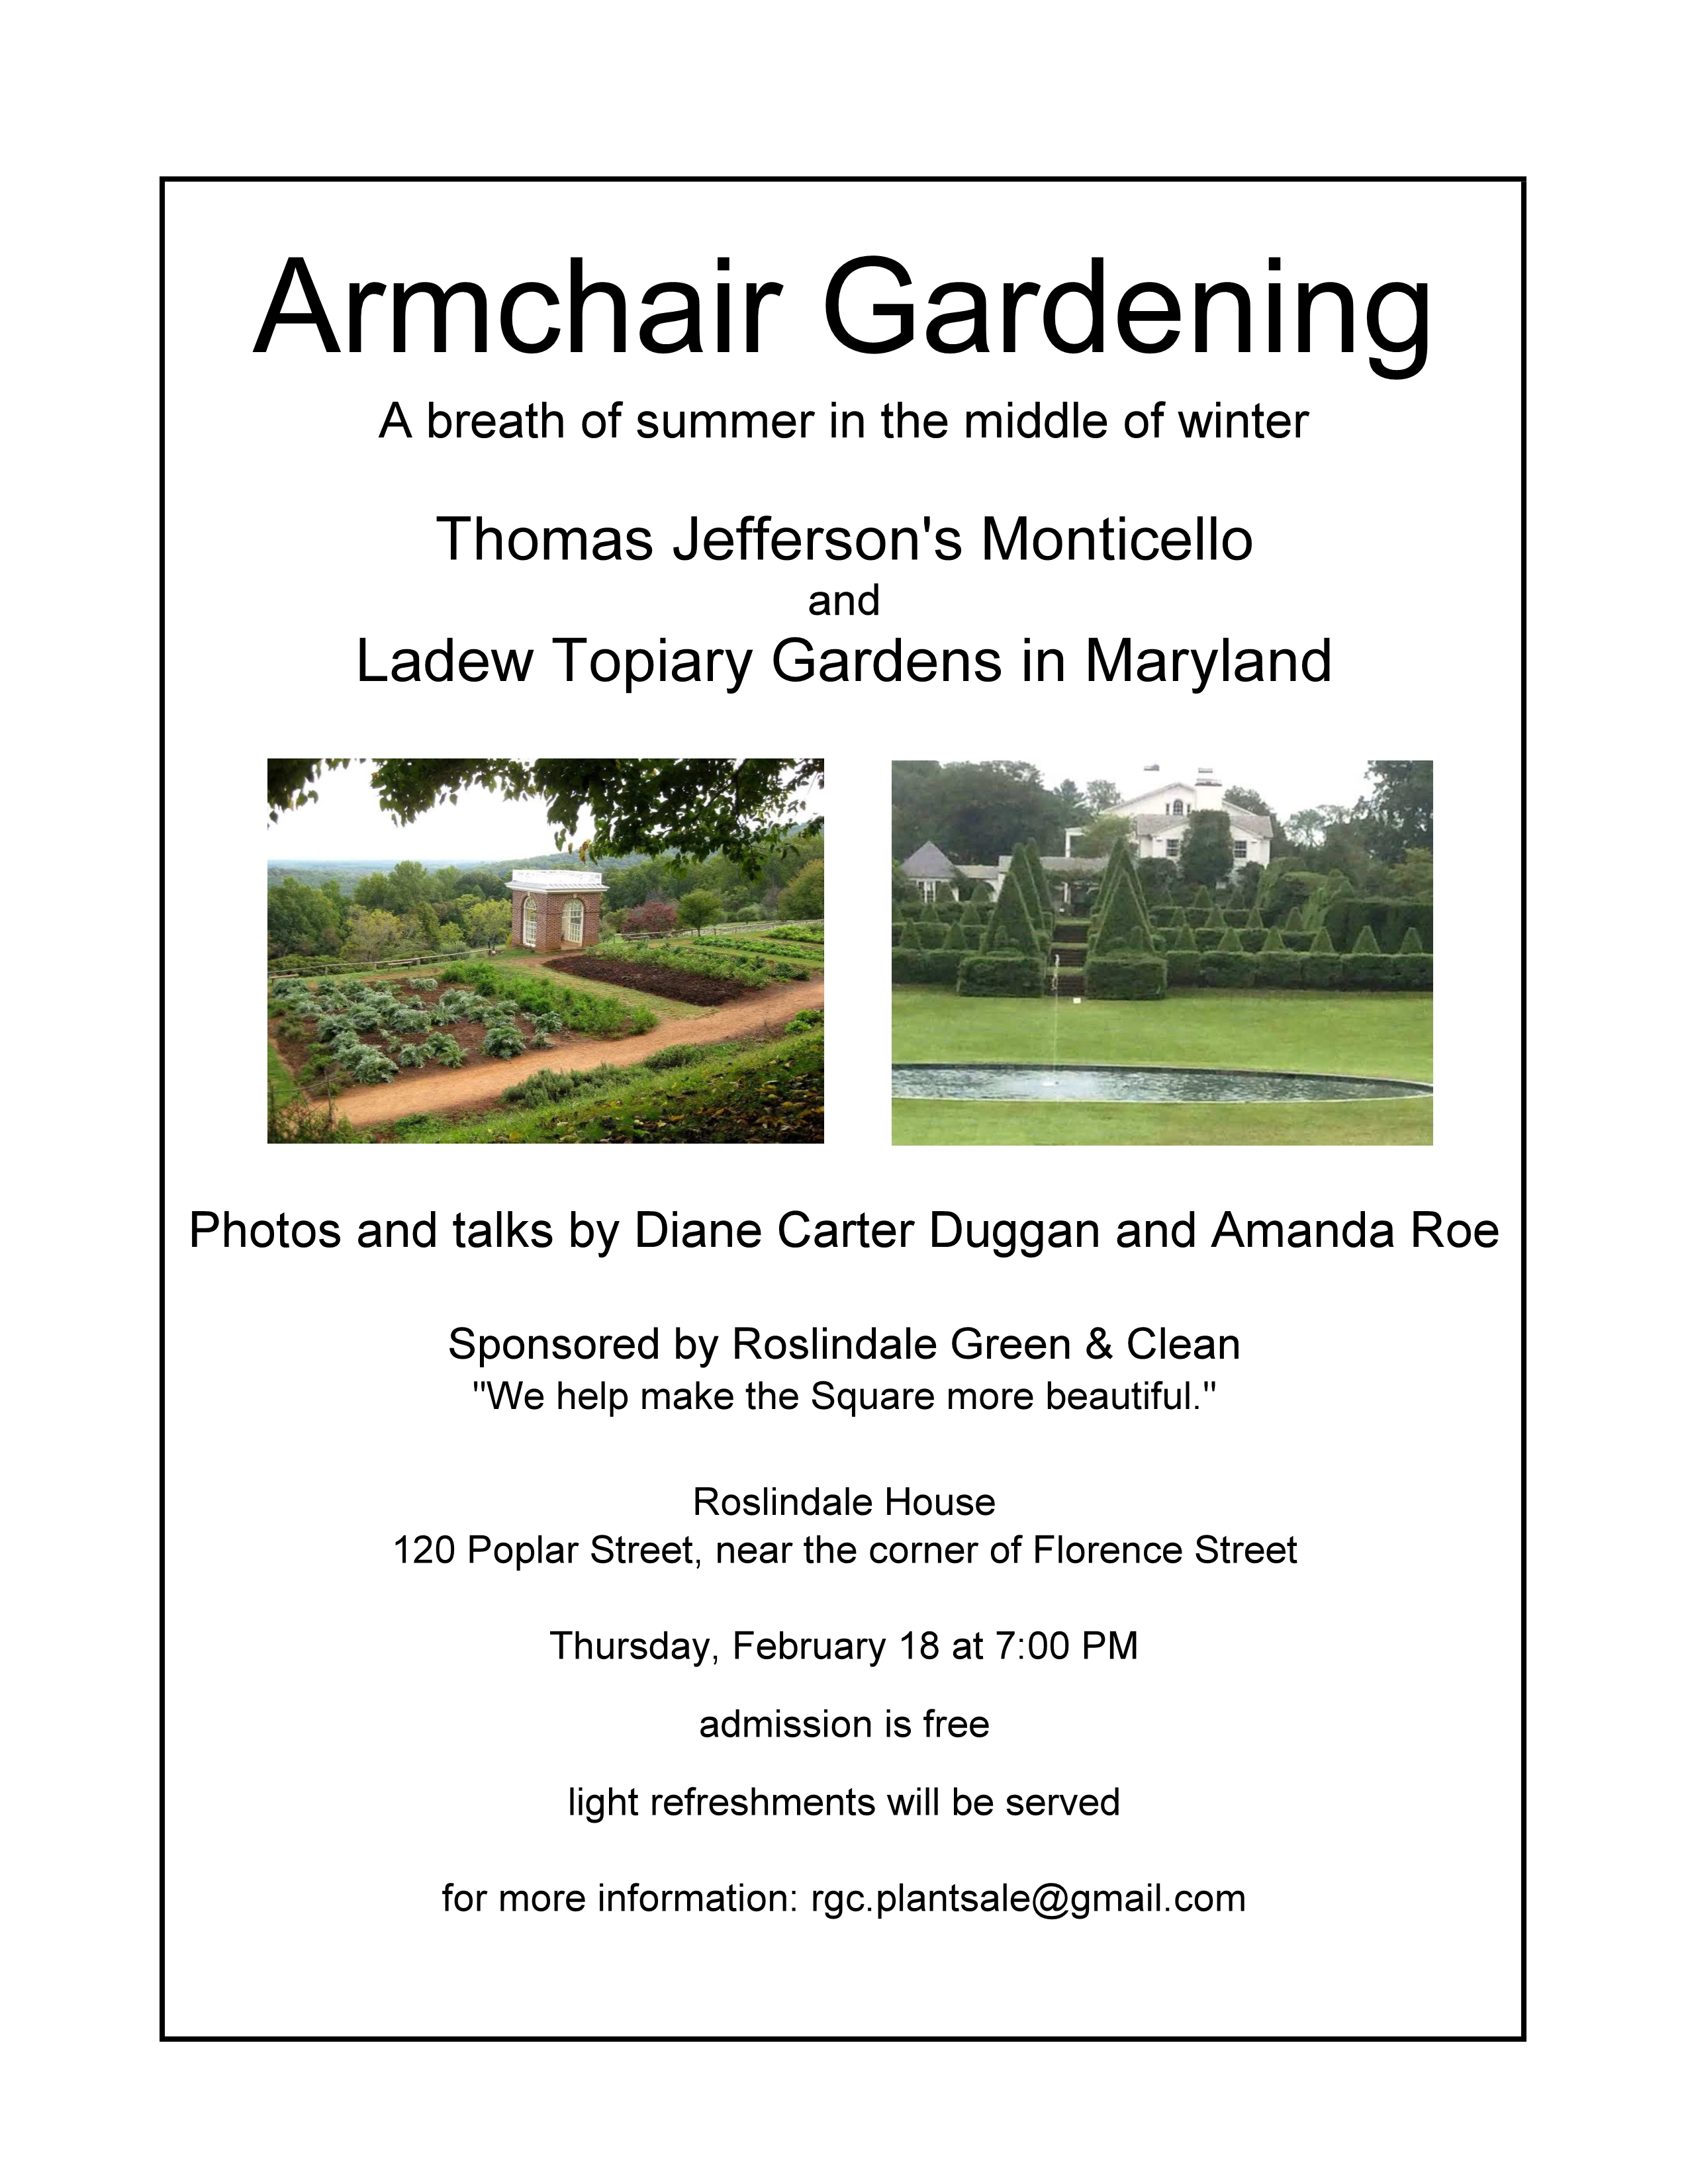 February 2016 Armchair Gardening Presentation Announcement